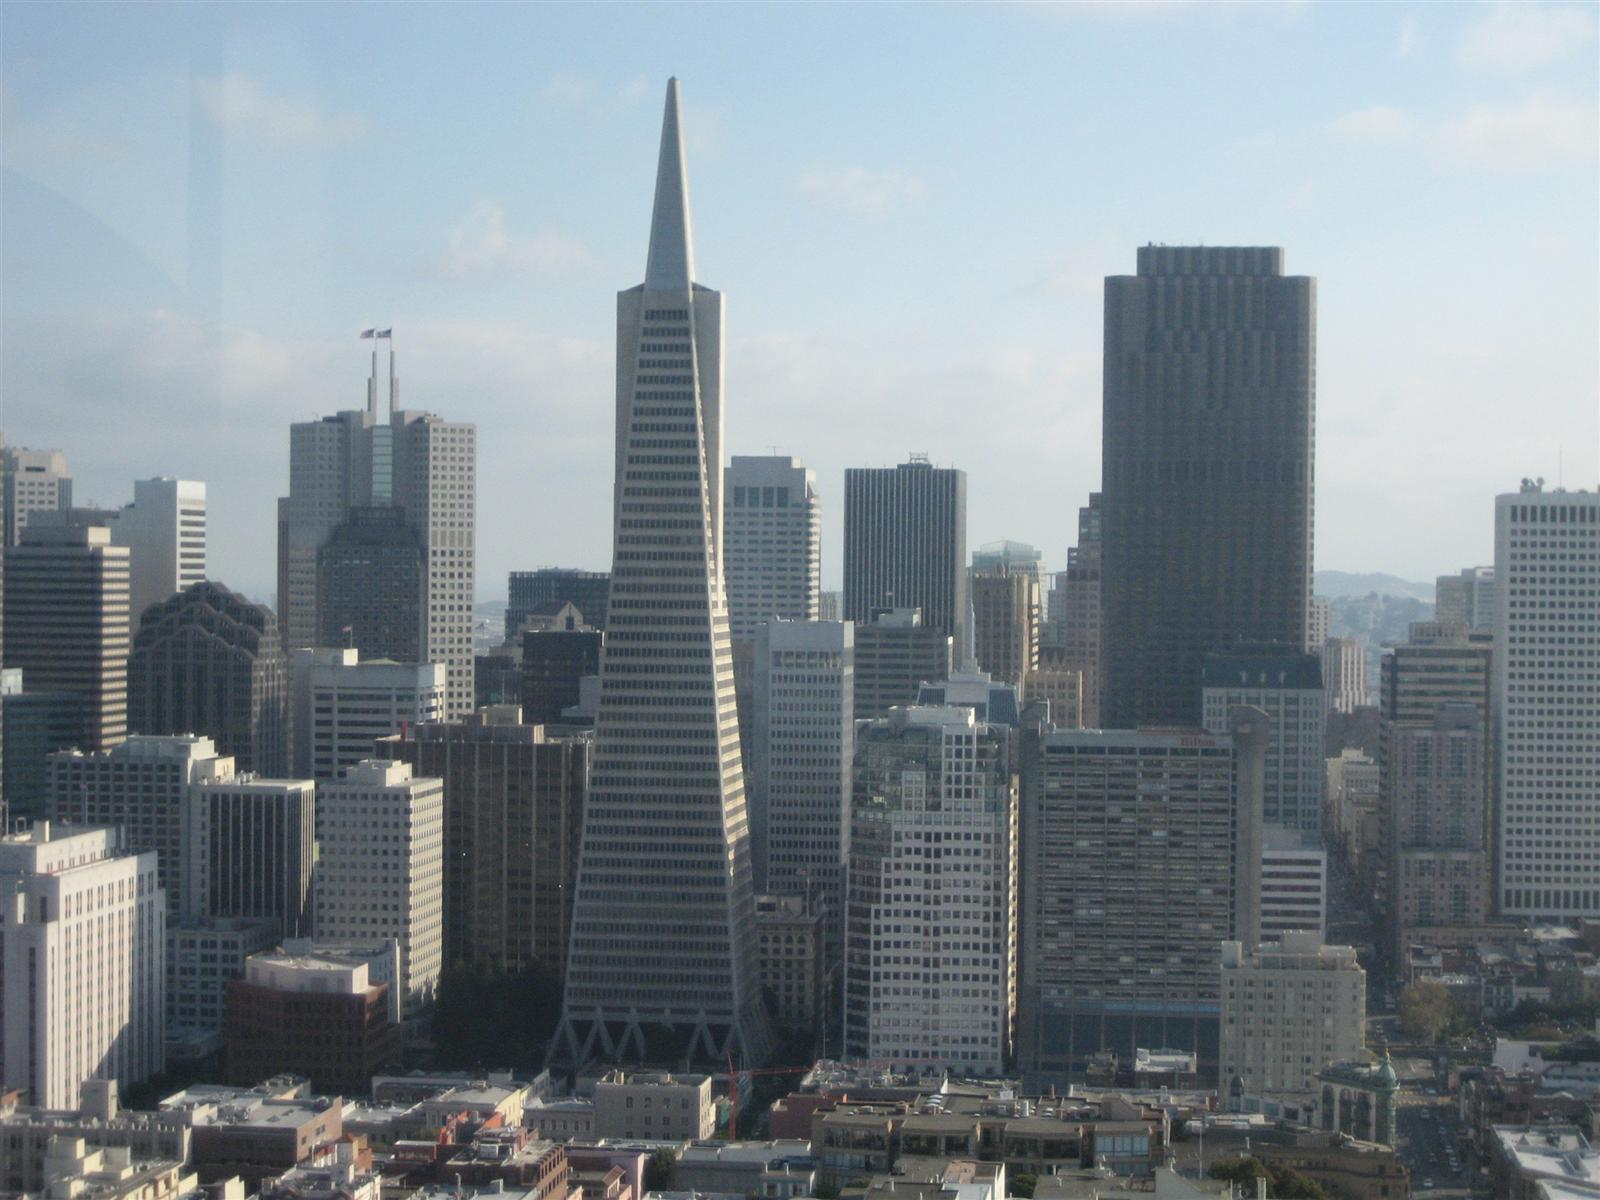 Downtown san Francisco from